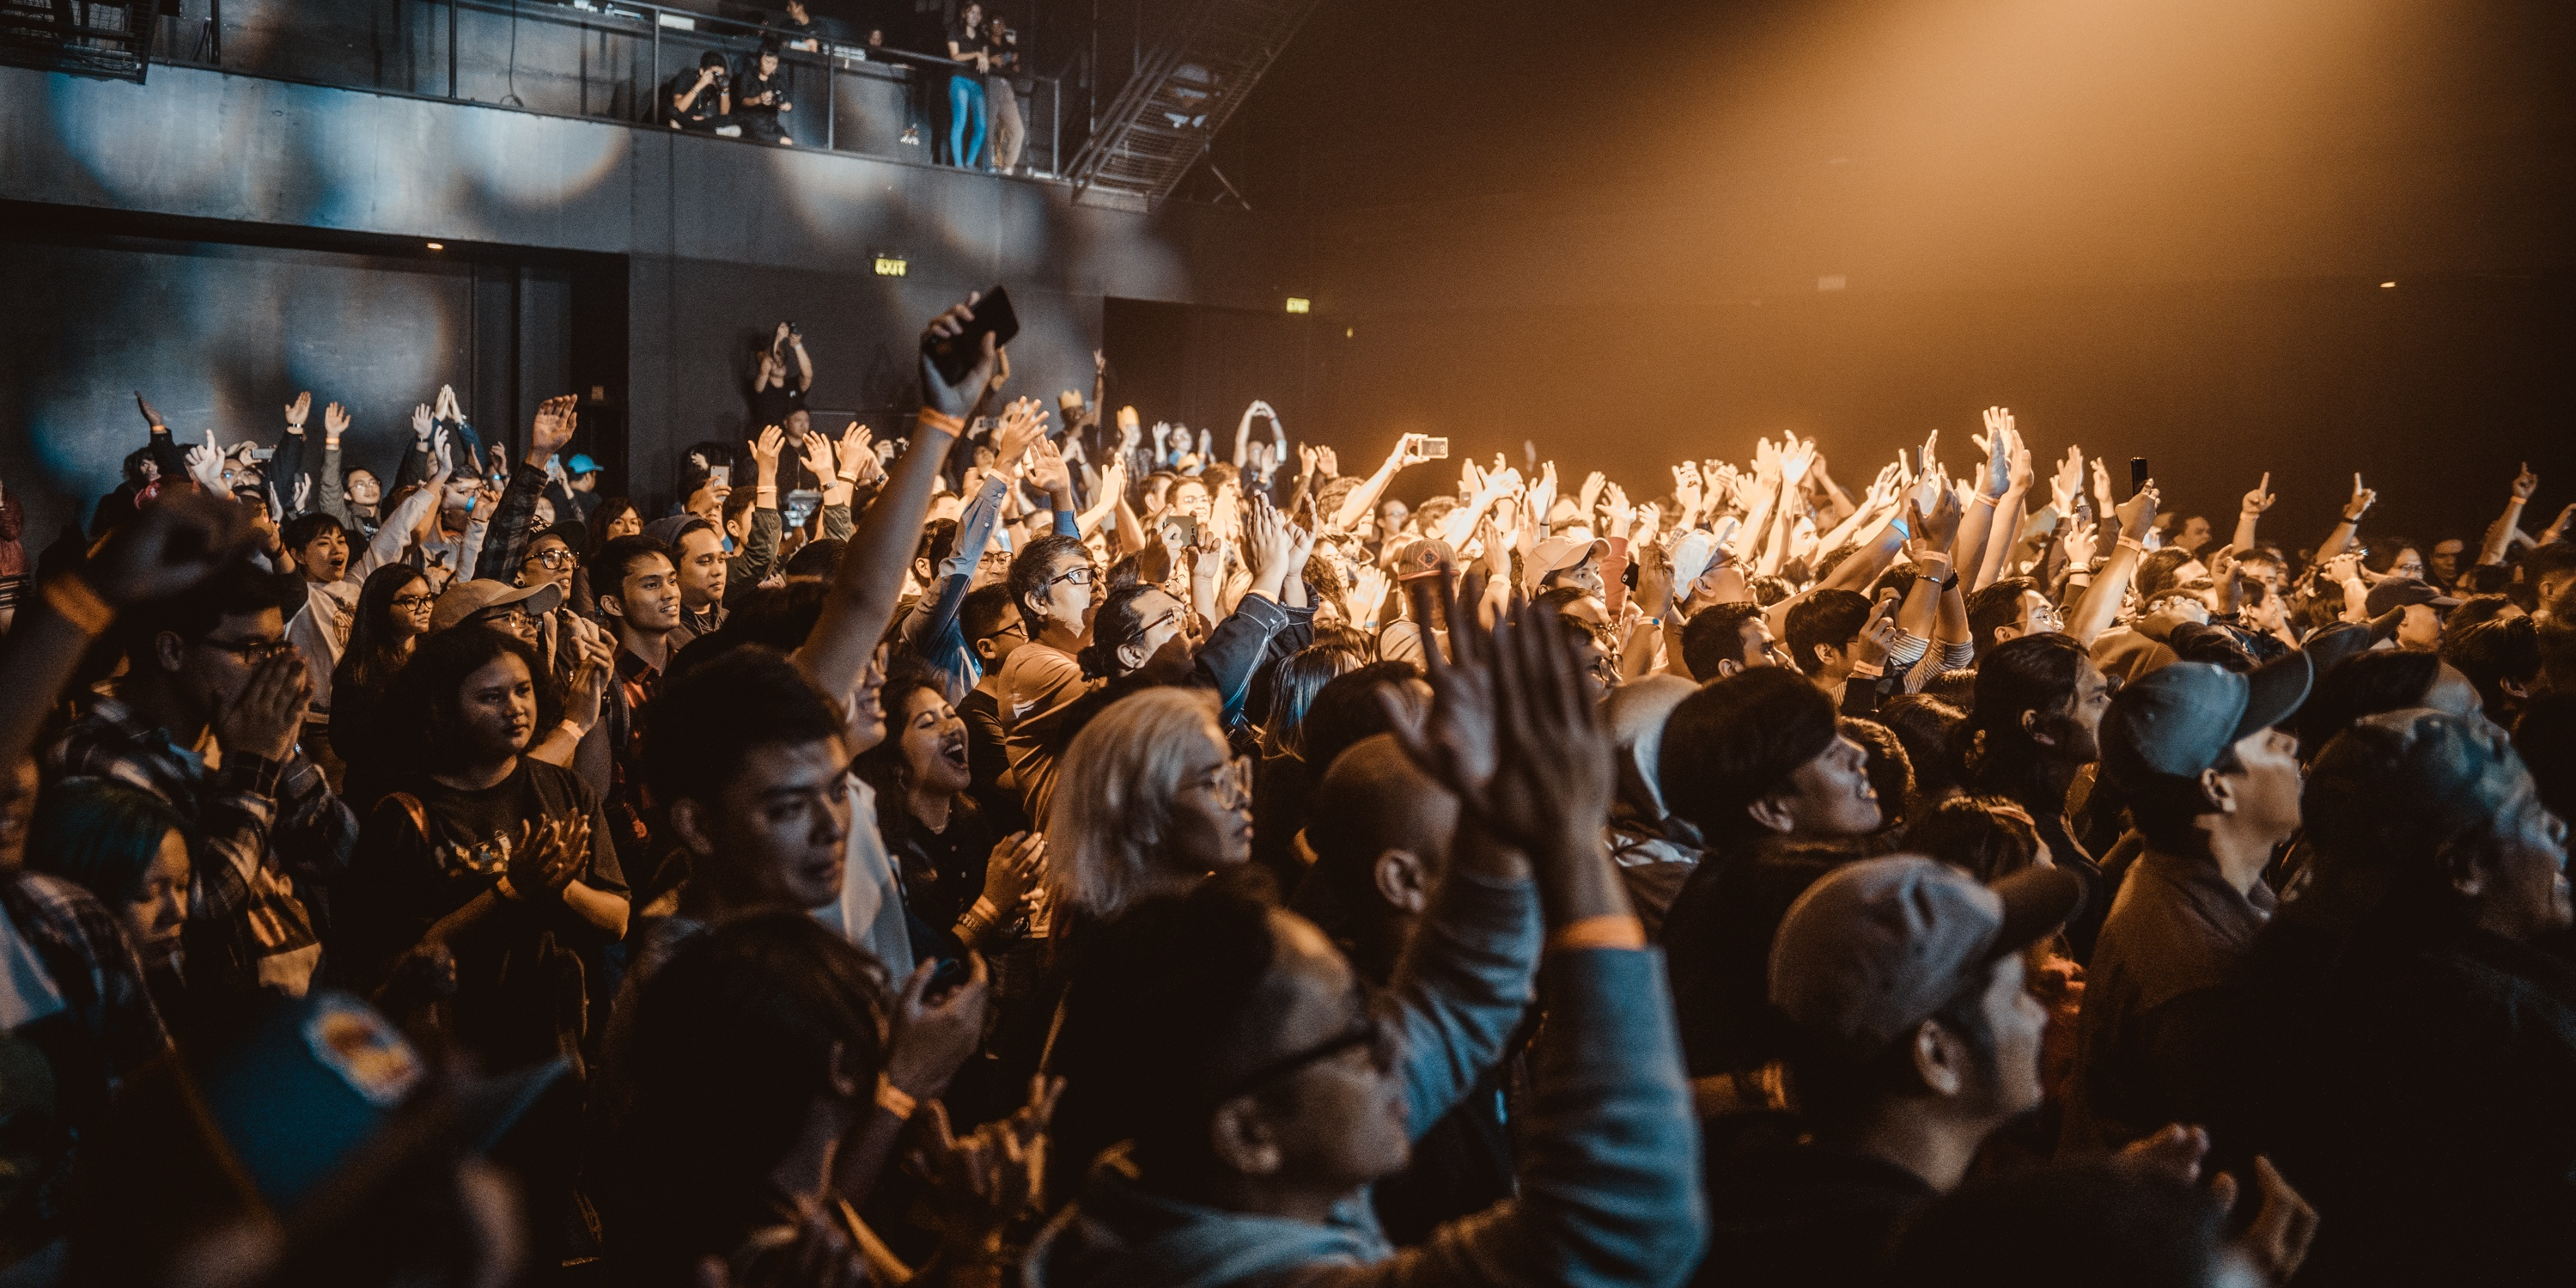 Fans tell us what they miss most about going to gigs